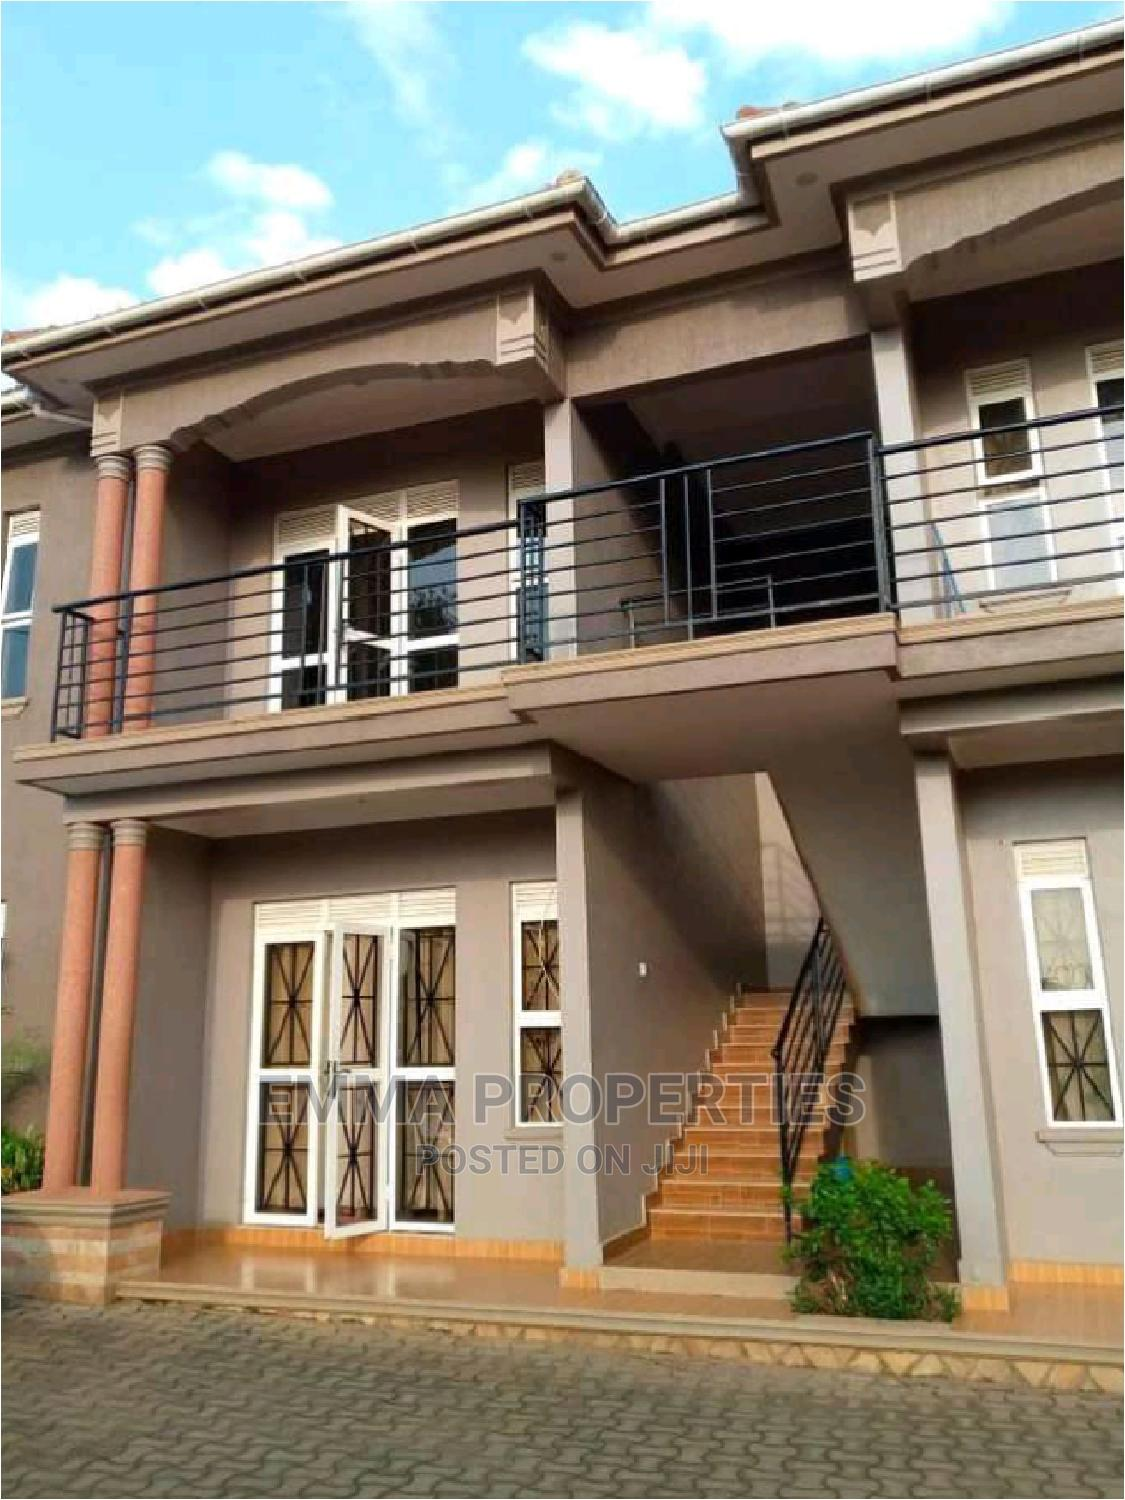 Archive: 2bdrm Apartment in Munyonyo, Kampala for Rent